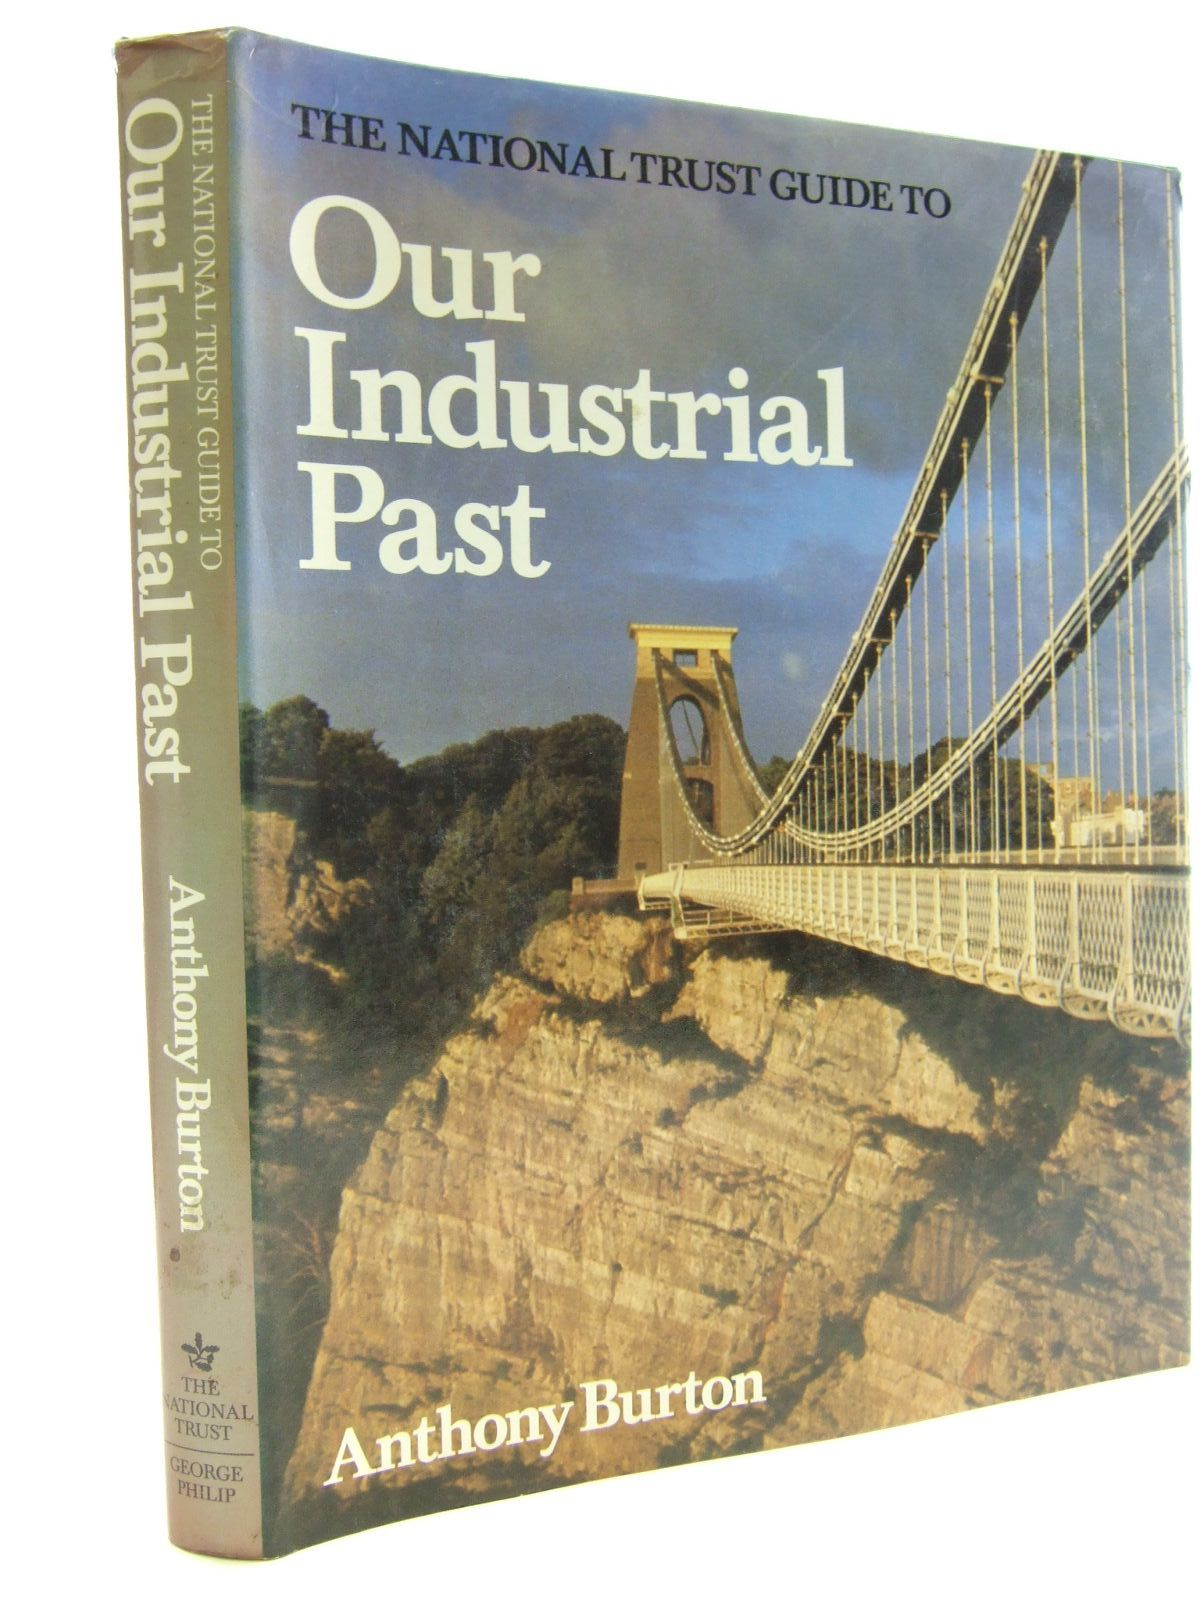 Photo of THE NATIONAL TRUST GUIDE TO OUR INDUSTRIAL PAST written by Burton, Anthony published by George Philip, The National Trust For Scotland (STOCK CODE: 2107447)  for sale by Stella & Rose's Books